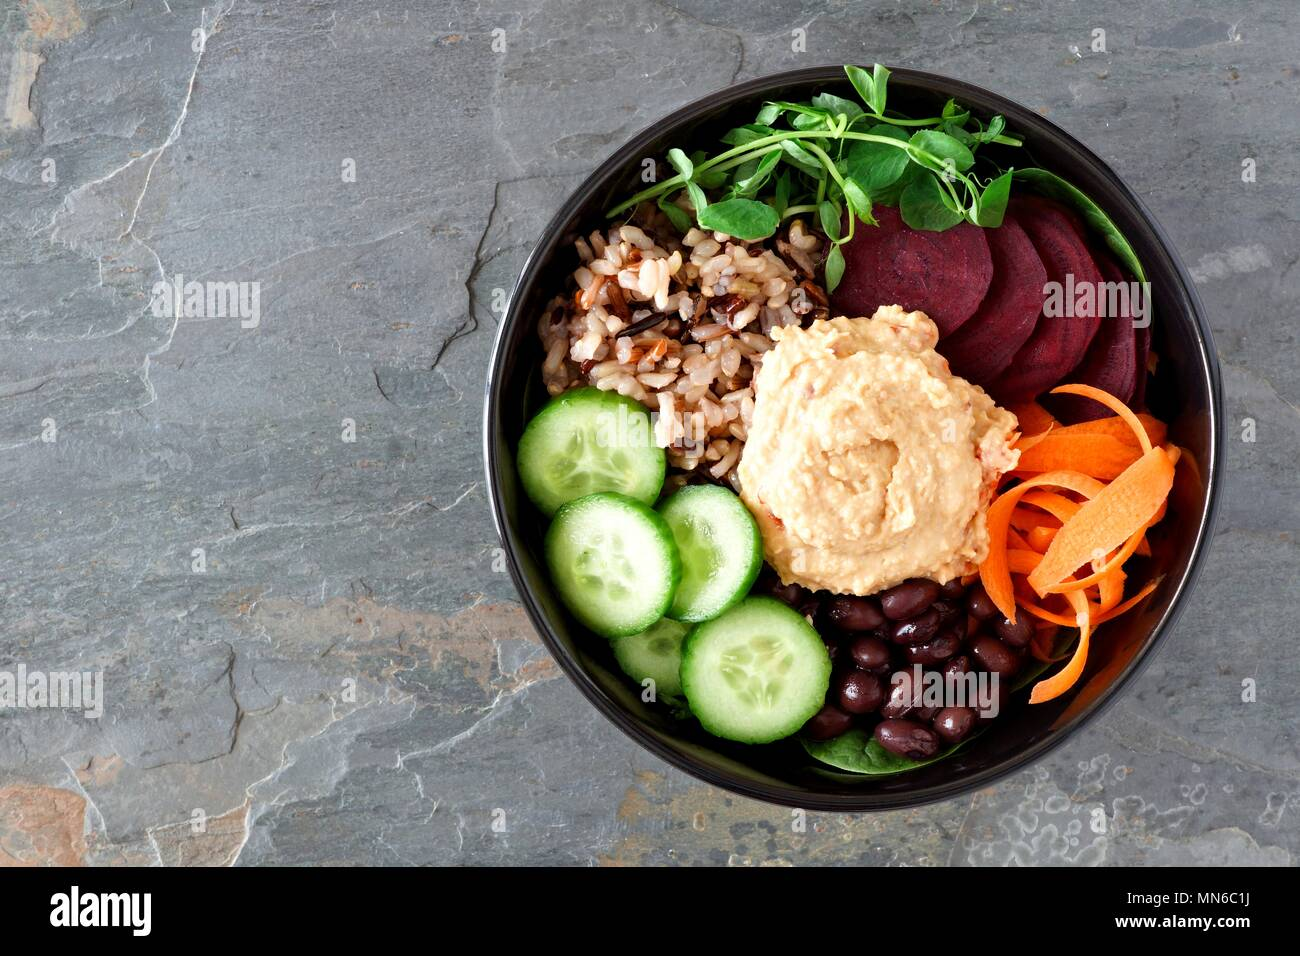 Healthy vegetarian salad bowl with hummus, beans, wild rice, beets, carrots, cucumbers and pea shoots. Above view on slate background. - Stock Image